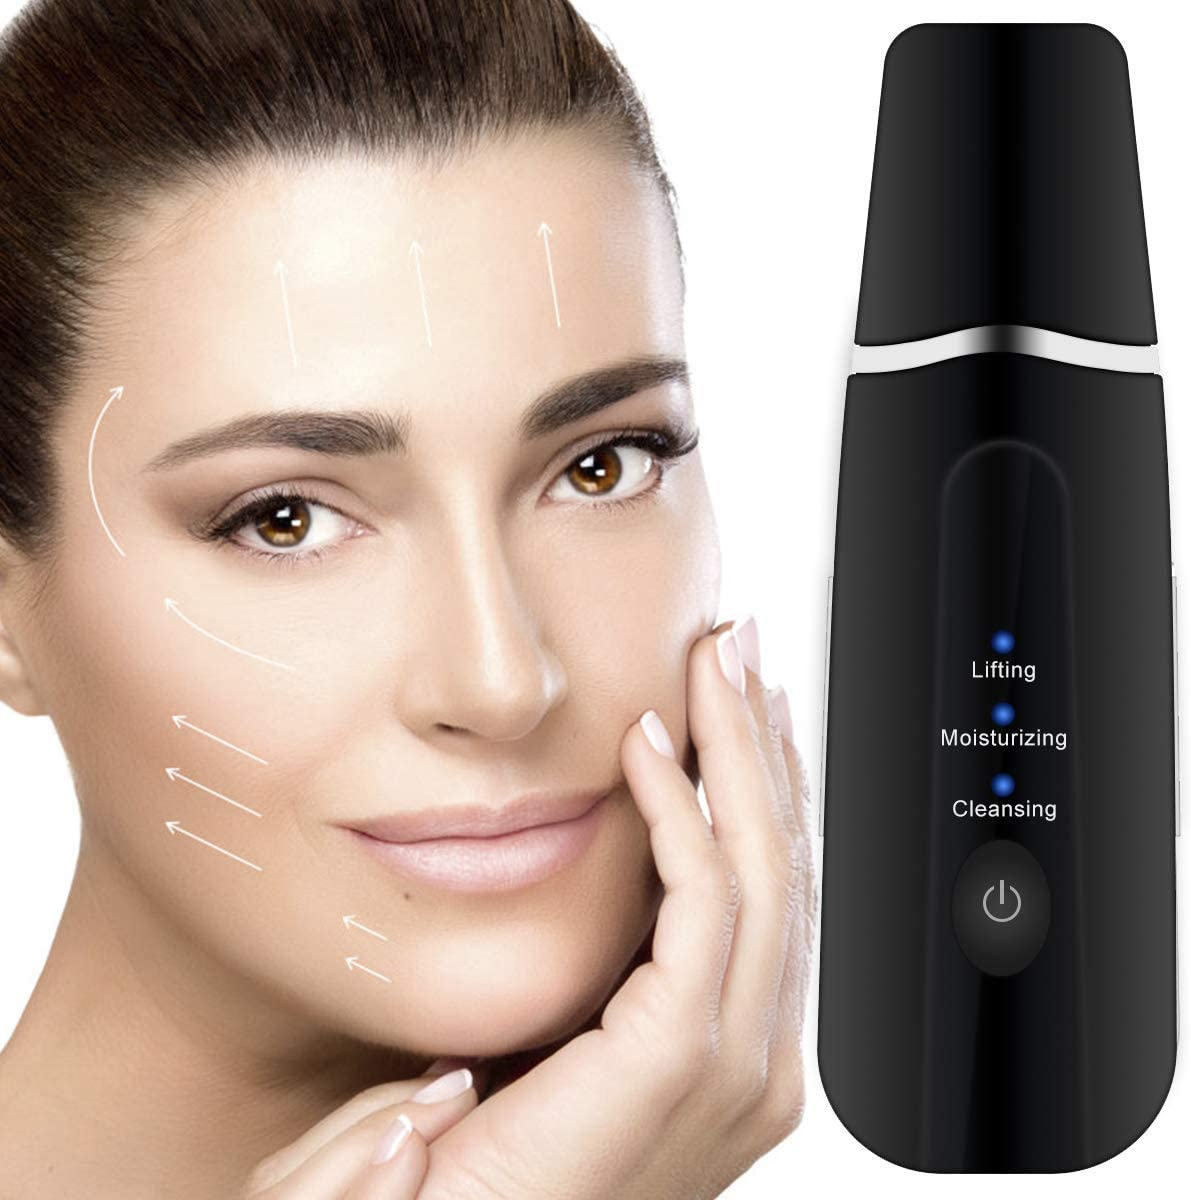 Professional Ultrasonic Facial Skin Scrubber - Backealth